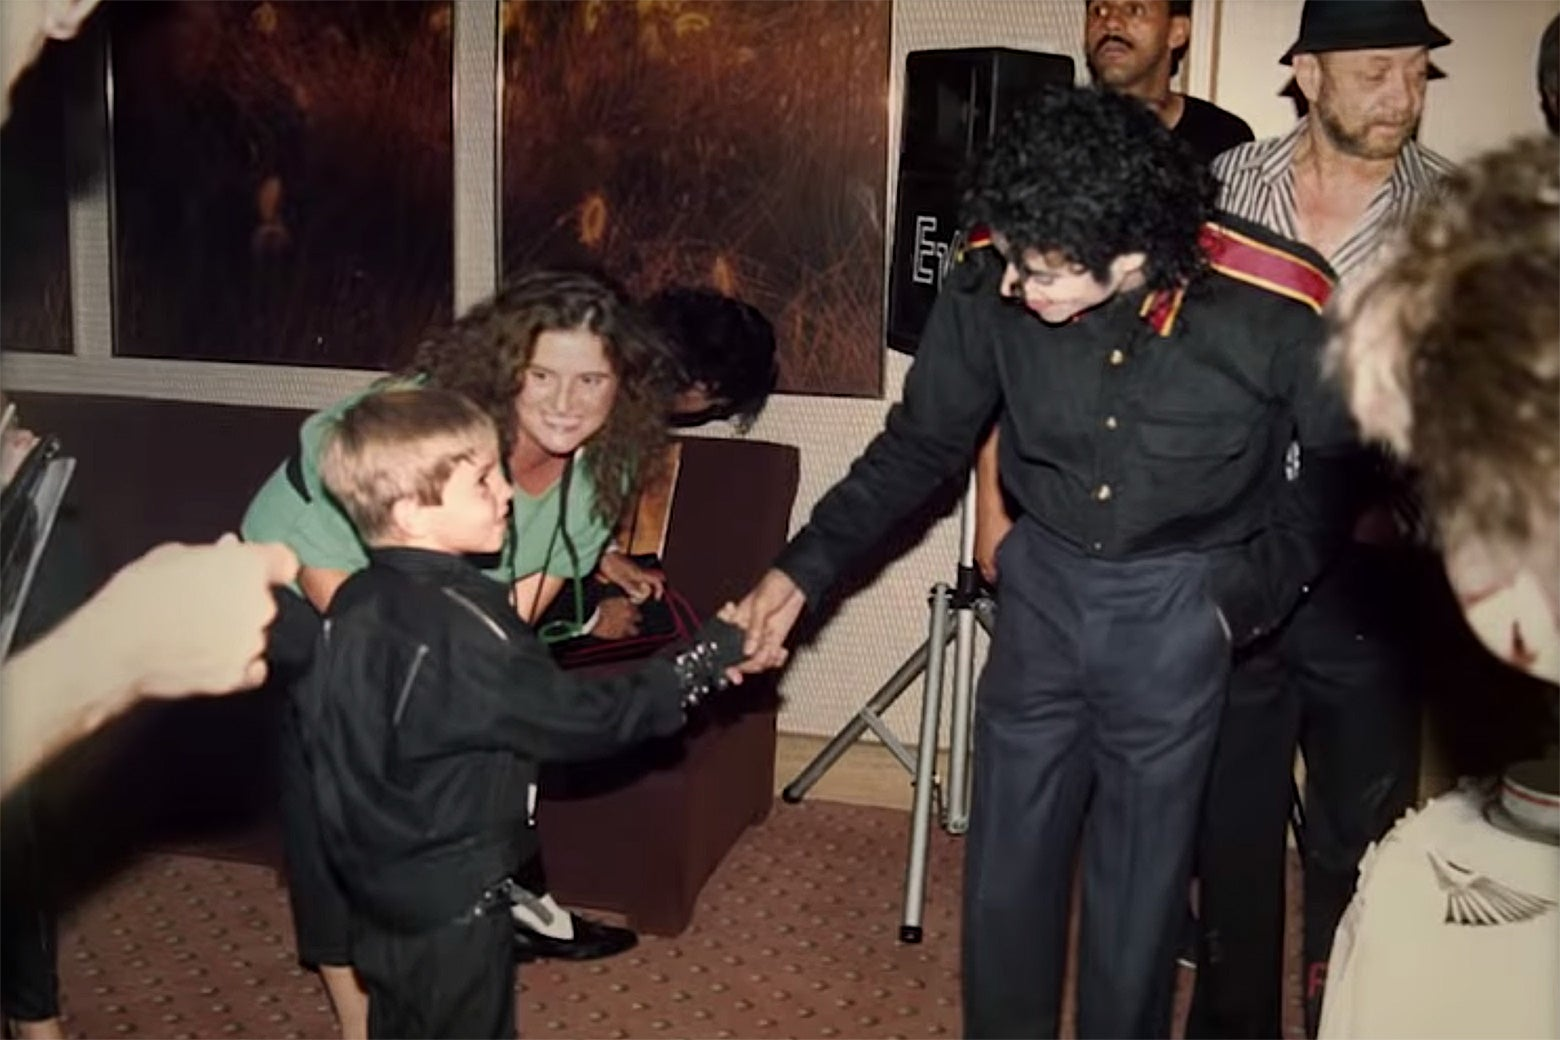 Michael Jackson shaking hands with a young James Safechuck dressed in an outfit inspired by the album Bad.